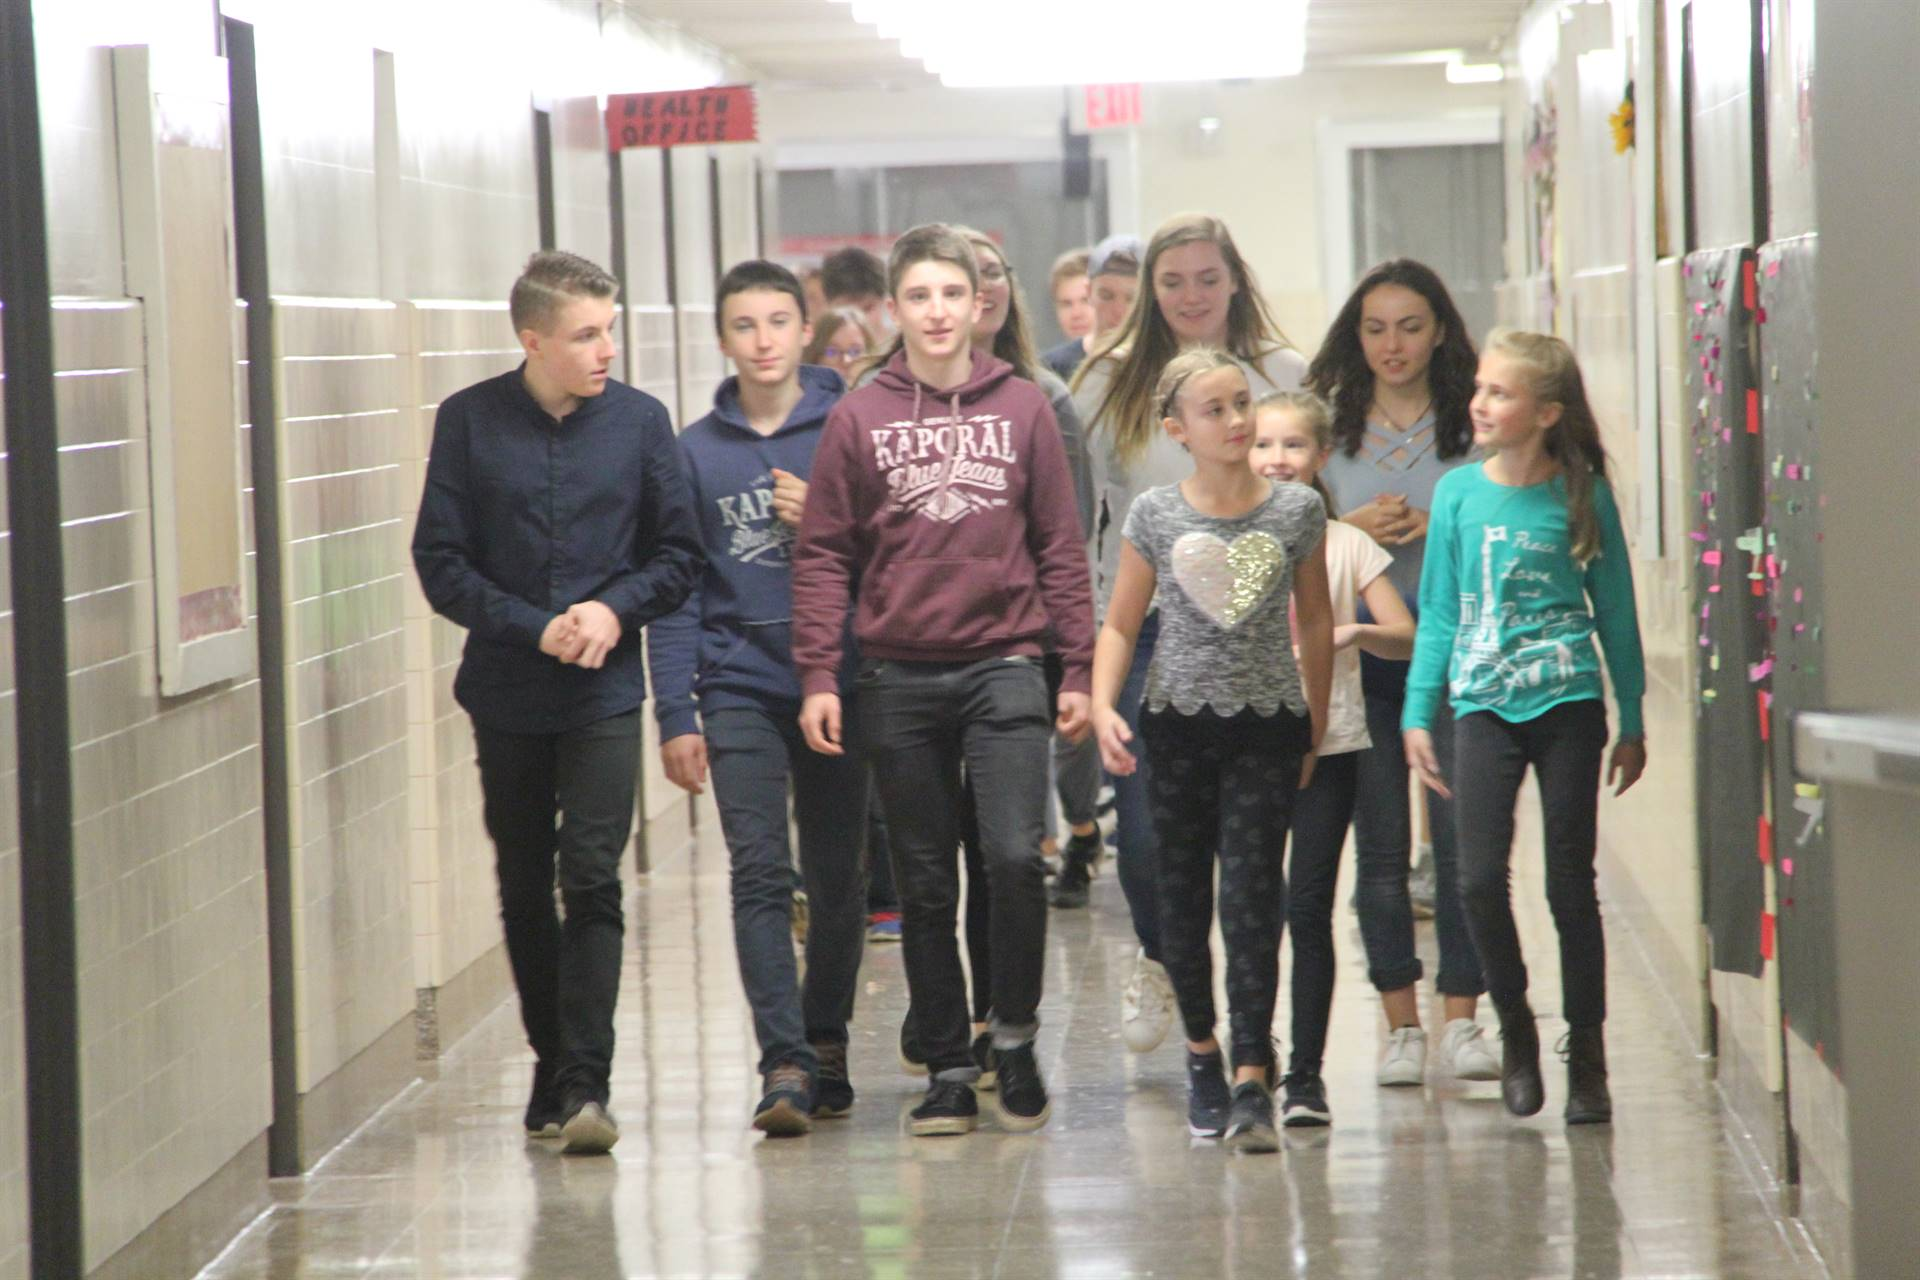 elementary students walking down hallway with french exchange students